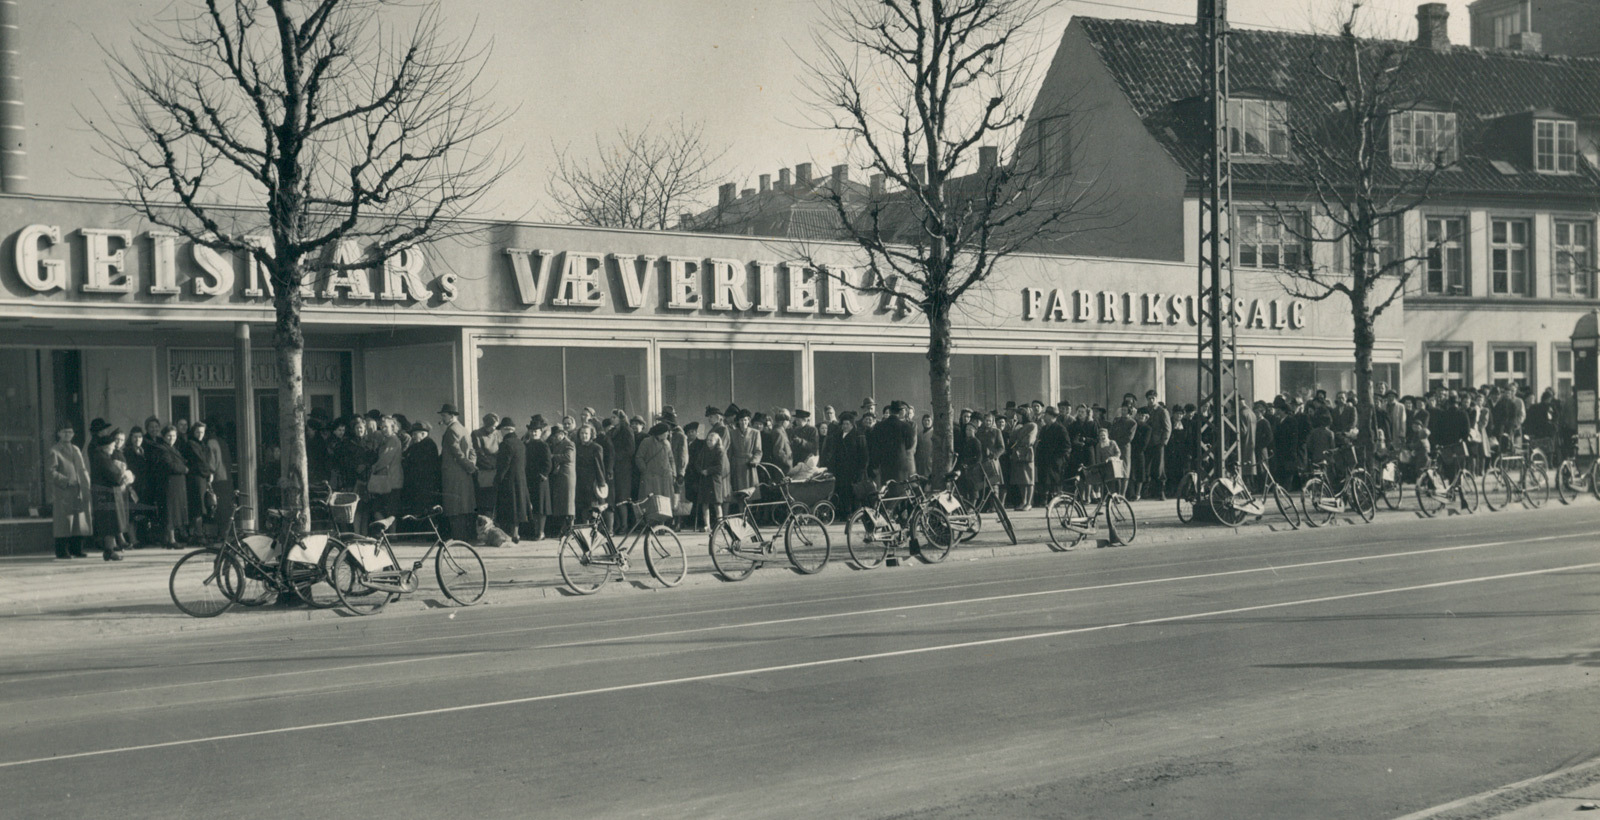 Photo: The shop at Peter Bangs Vej - Circa 1955